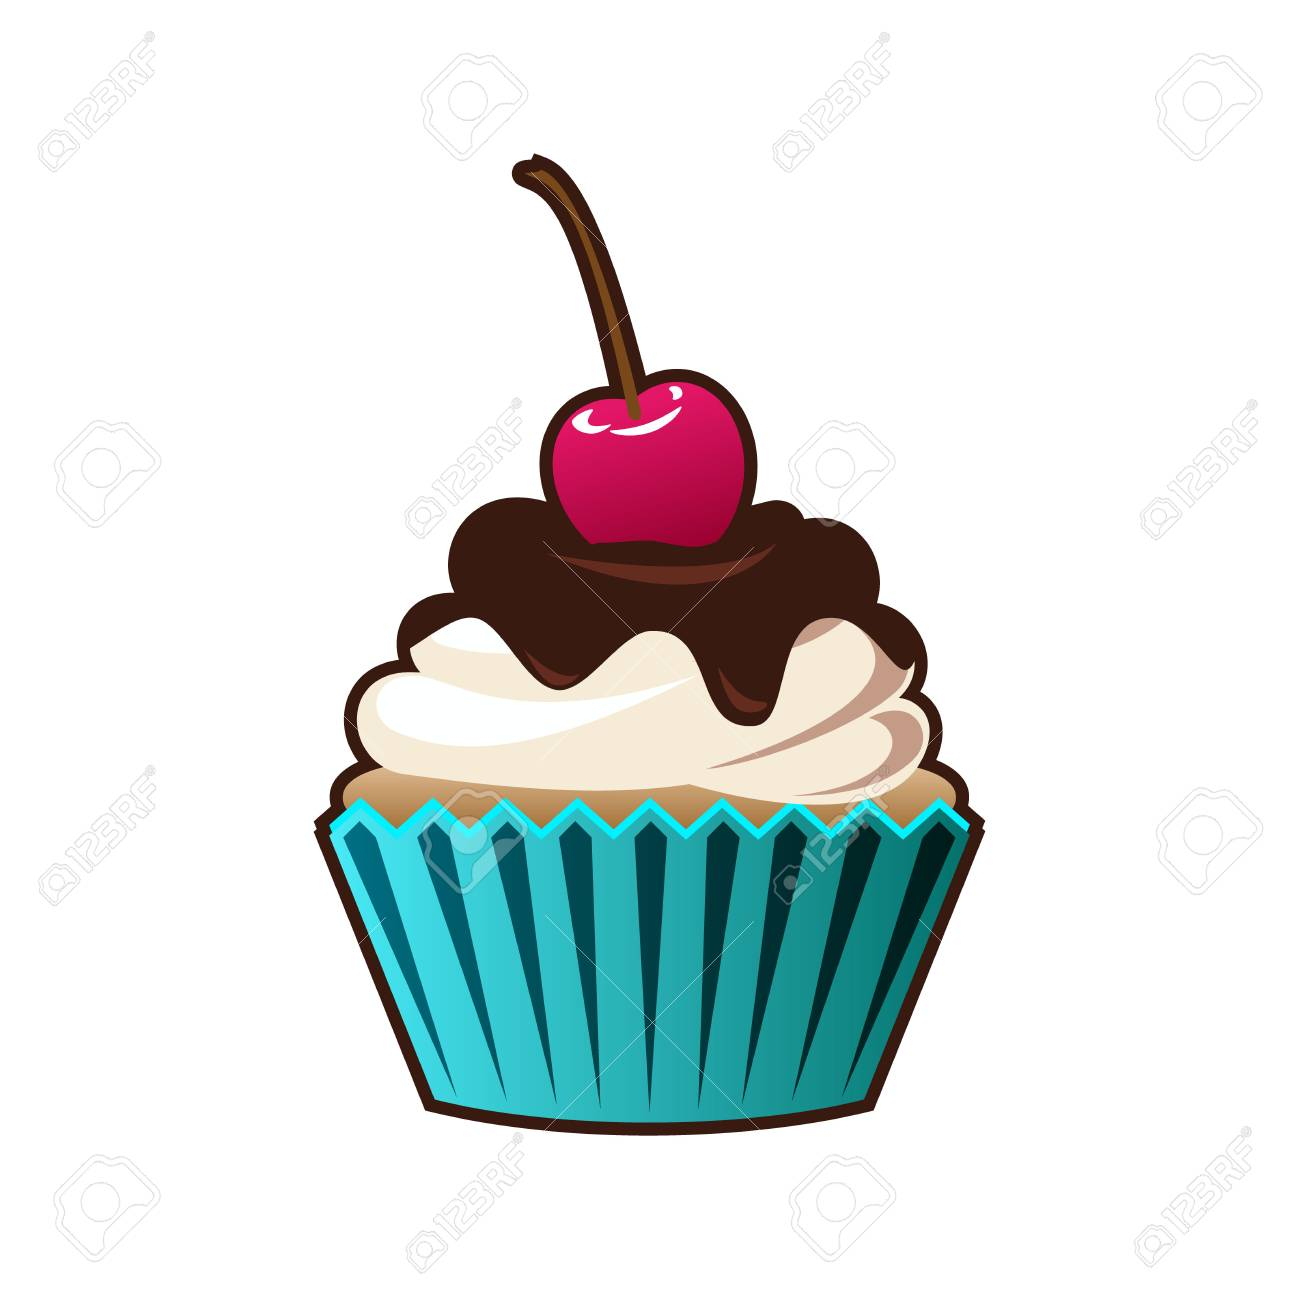 cupcakes and muffins cartoon icon royalty free cliparts vectors rh 123rf com cartoon cake pictures cartoon cake pictures